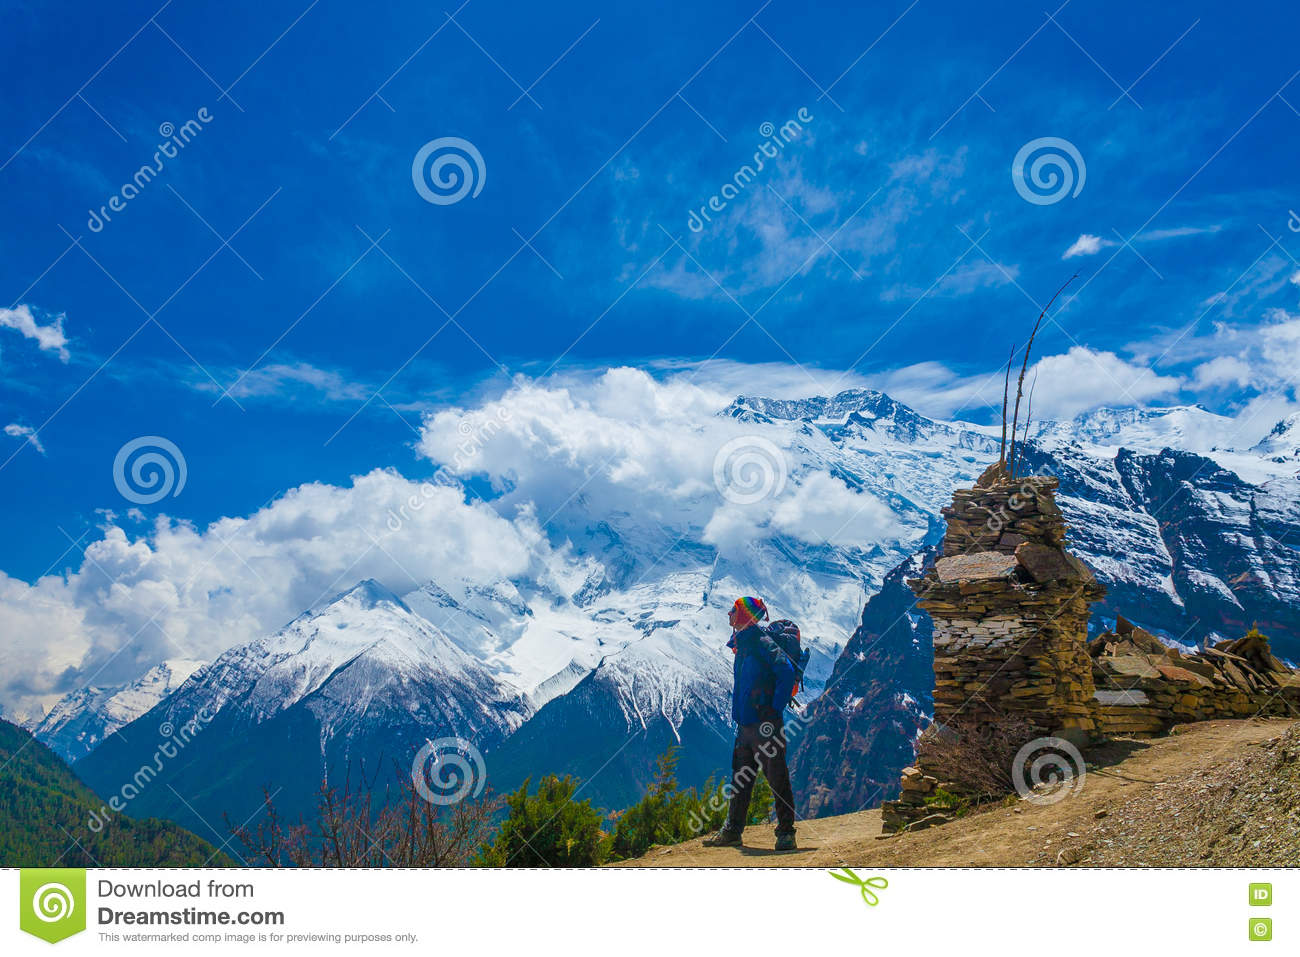 Photo Man Traveler Backpacker Mountains Way.Young Guy Looking Away Take Rest Sunny Terrace Path.Snow Landscape